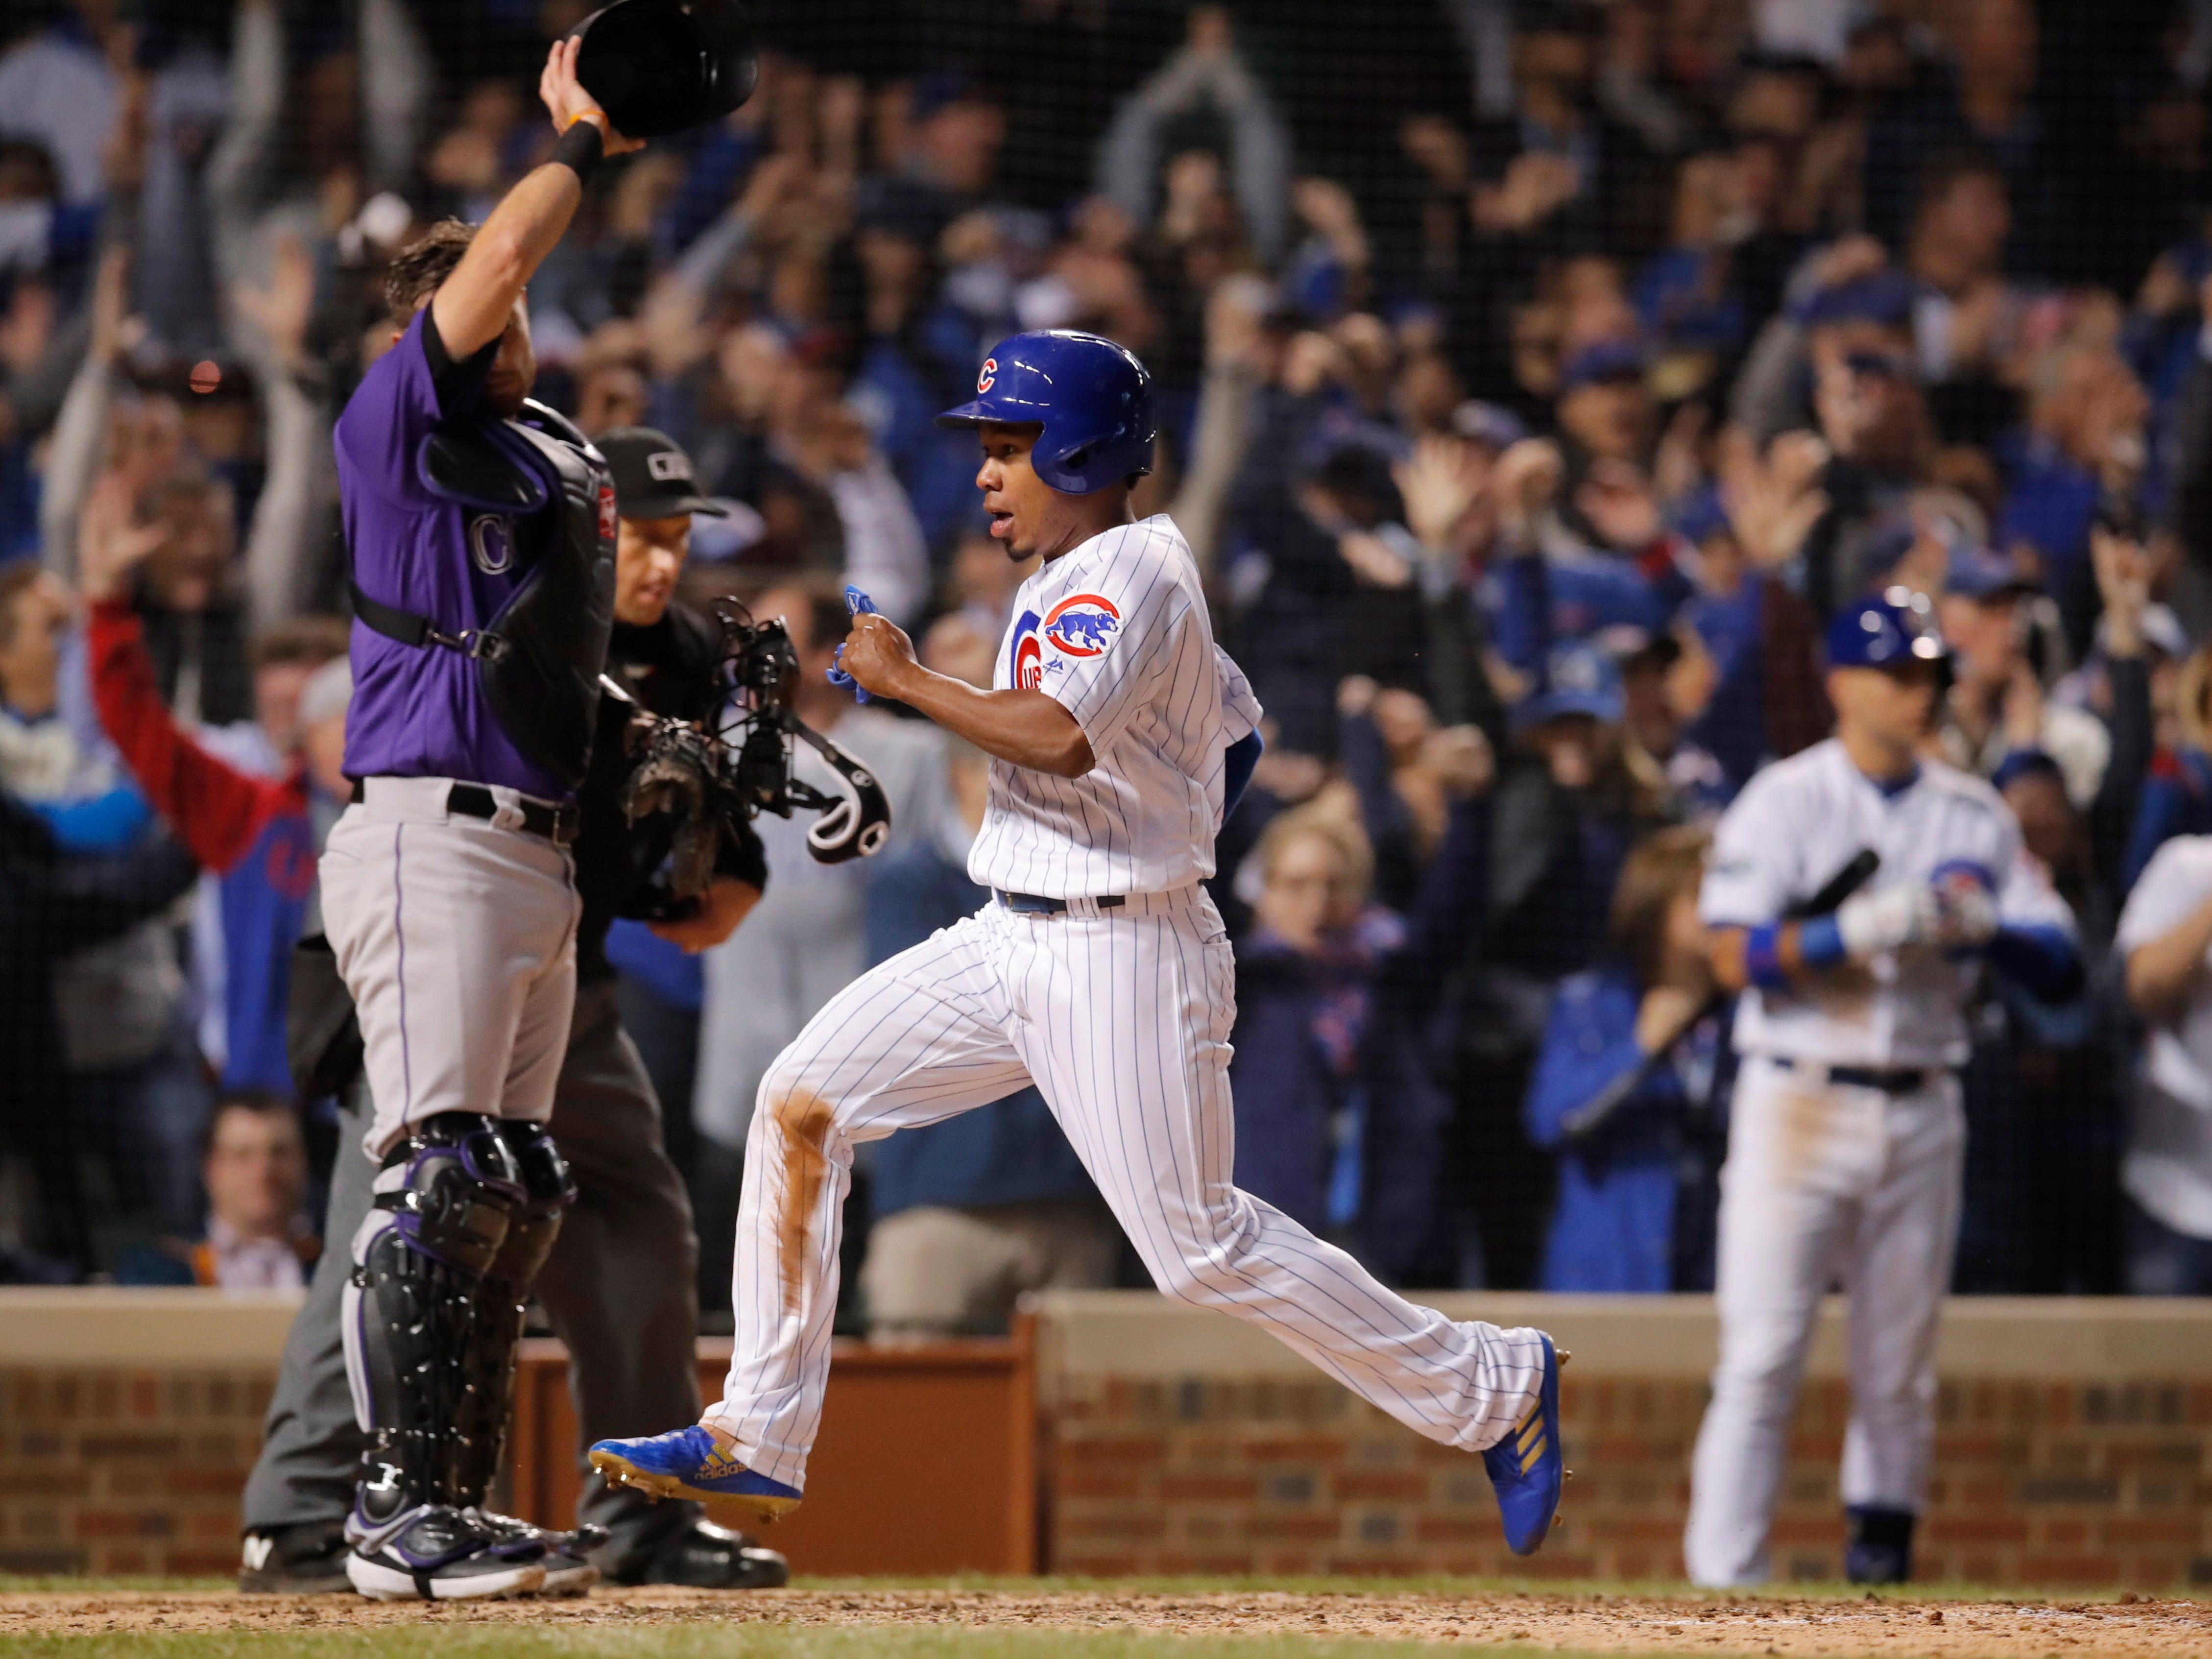 Oct 2, 2018; Chicago, IL, USA; Chicago Cubs pinch runner Terrance Gore scores a run against the Colorado Rockies in the 8th inning in the 2018 National League wild card playoff baseball game at Wrigley Field.